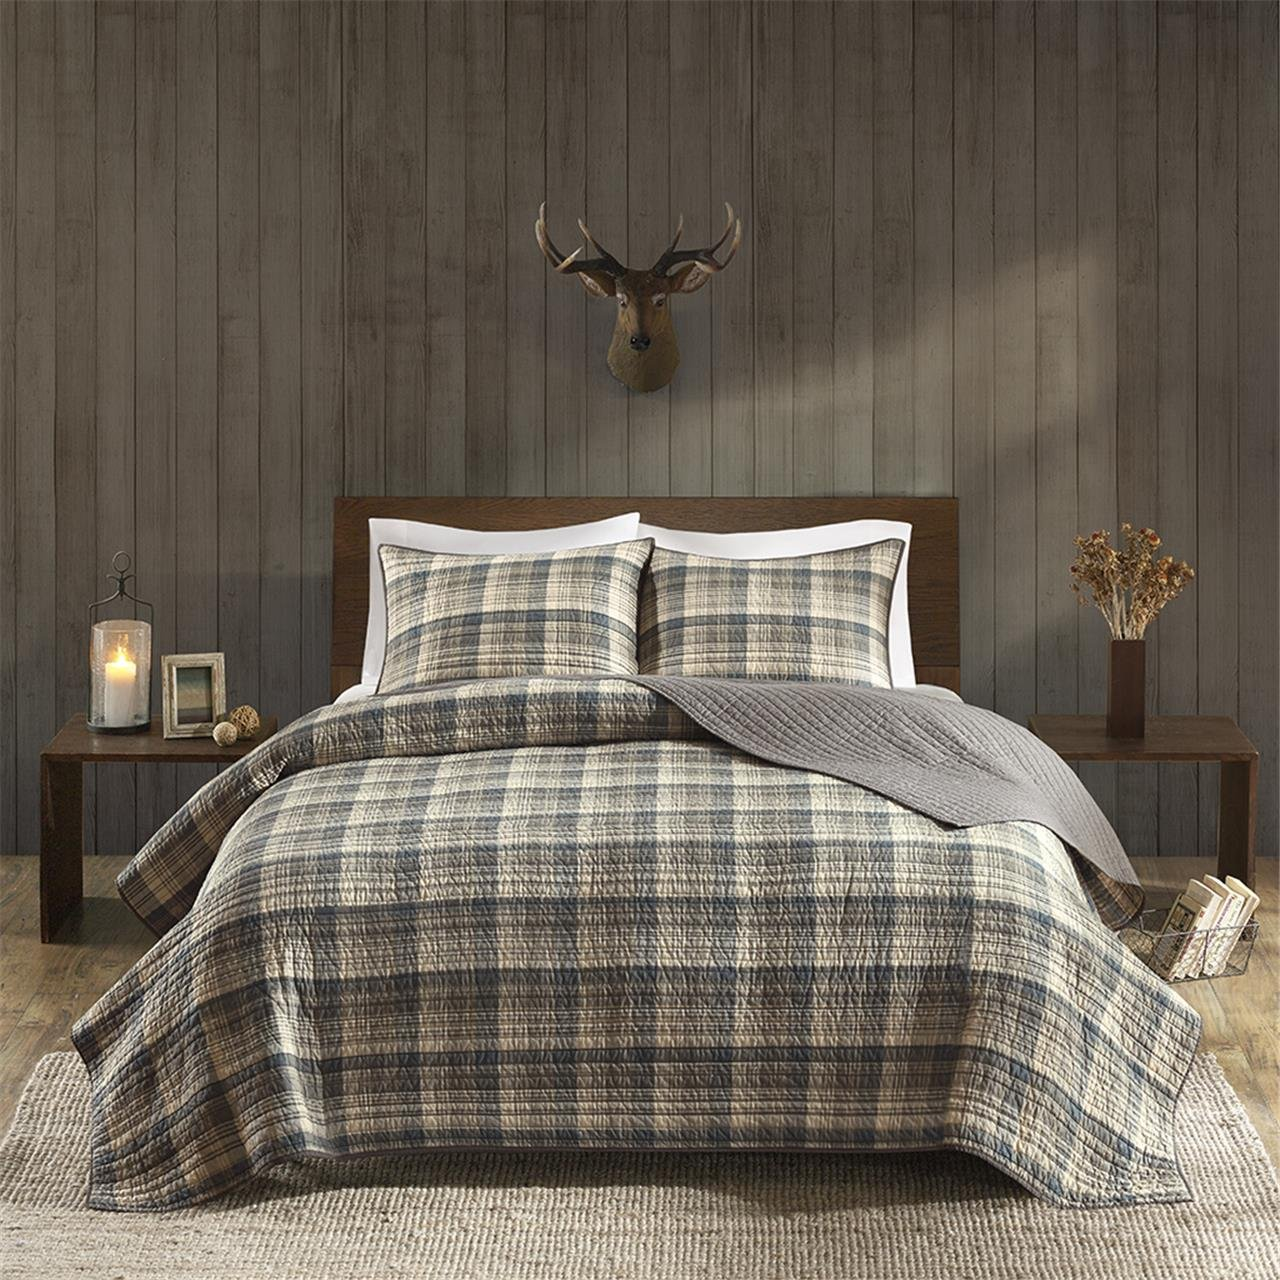 Woolrich Tasha Full/Queen Size Quilt Bedding Set - Tan, Plaid – 3 Piece Bedding Quilt Coverlets – Cotton Flannel Bed Quilts Quilted Coverlet